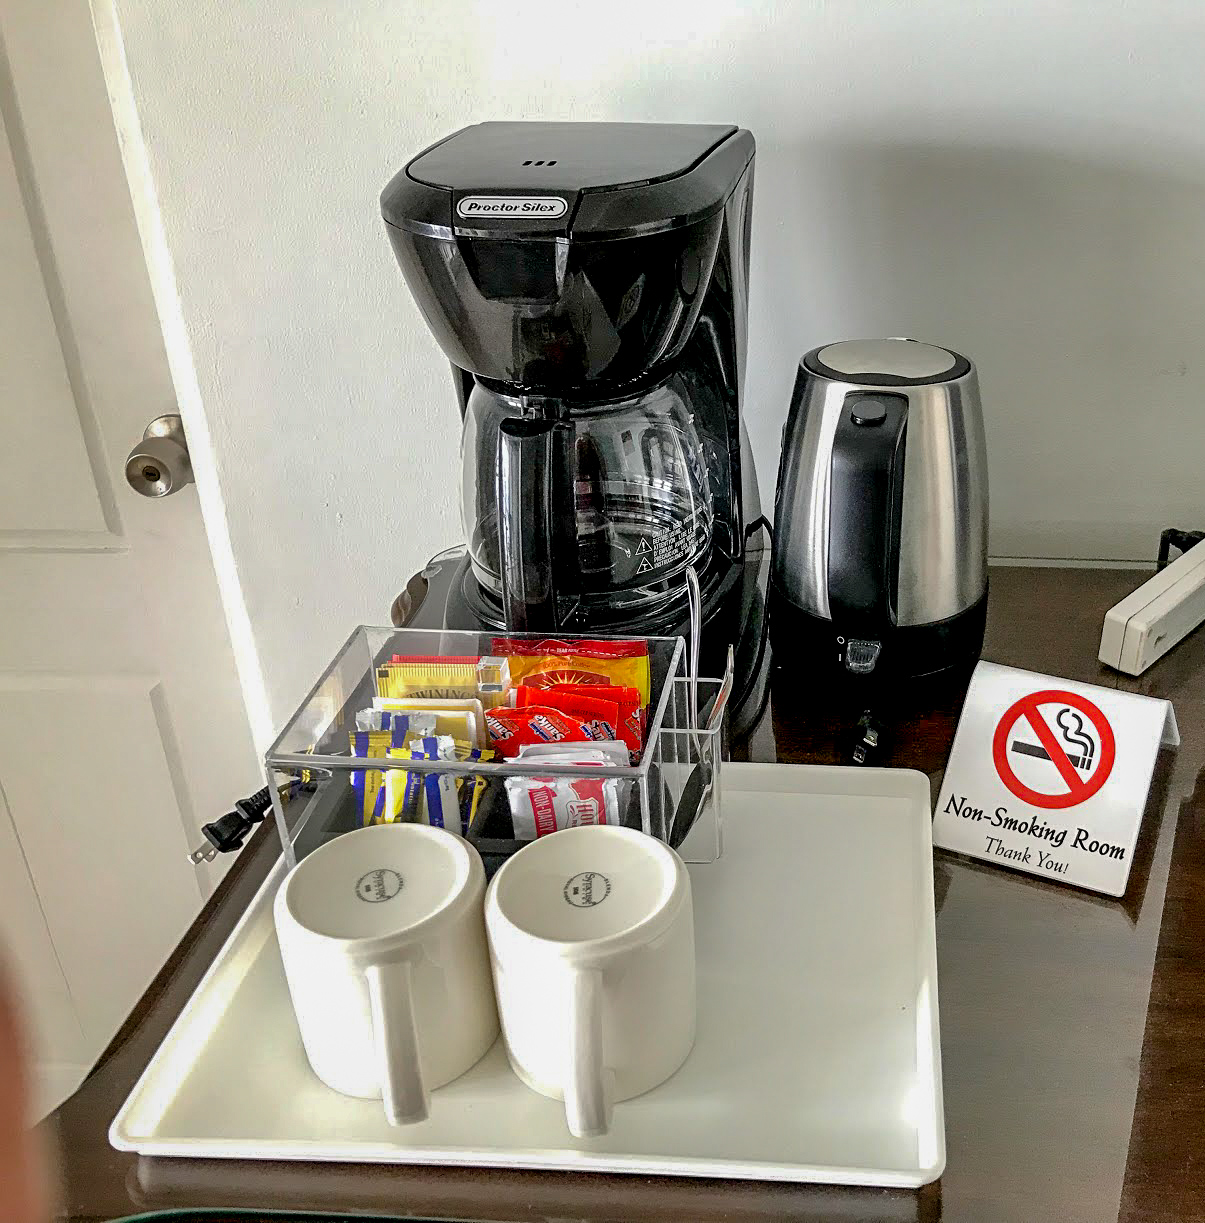 A coffee machine, tea bags, mugs and all the other things you need to make caffeine-filled joy